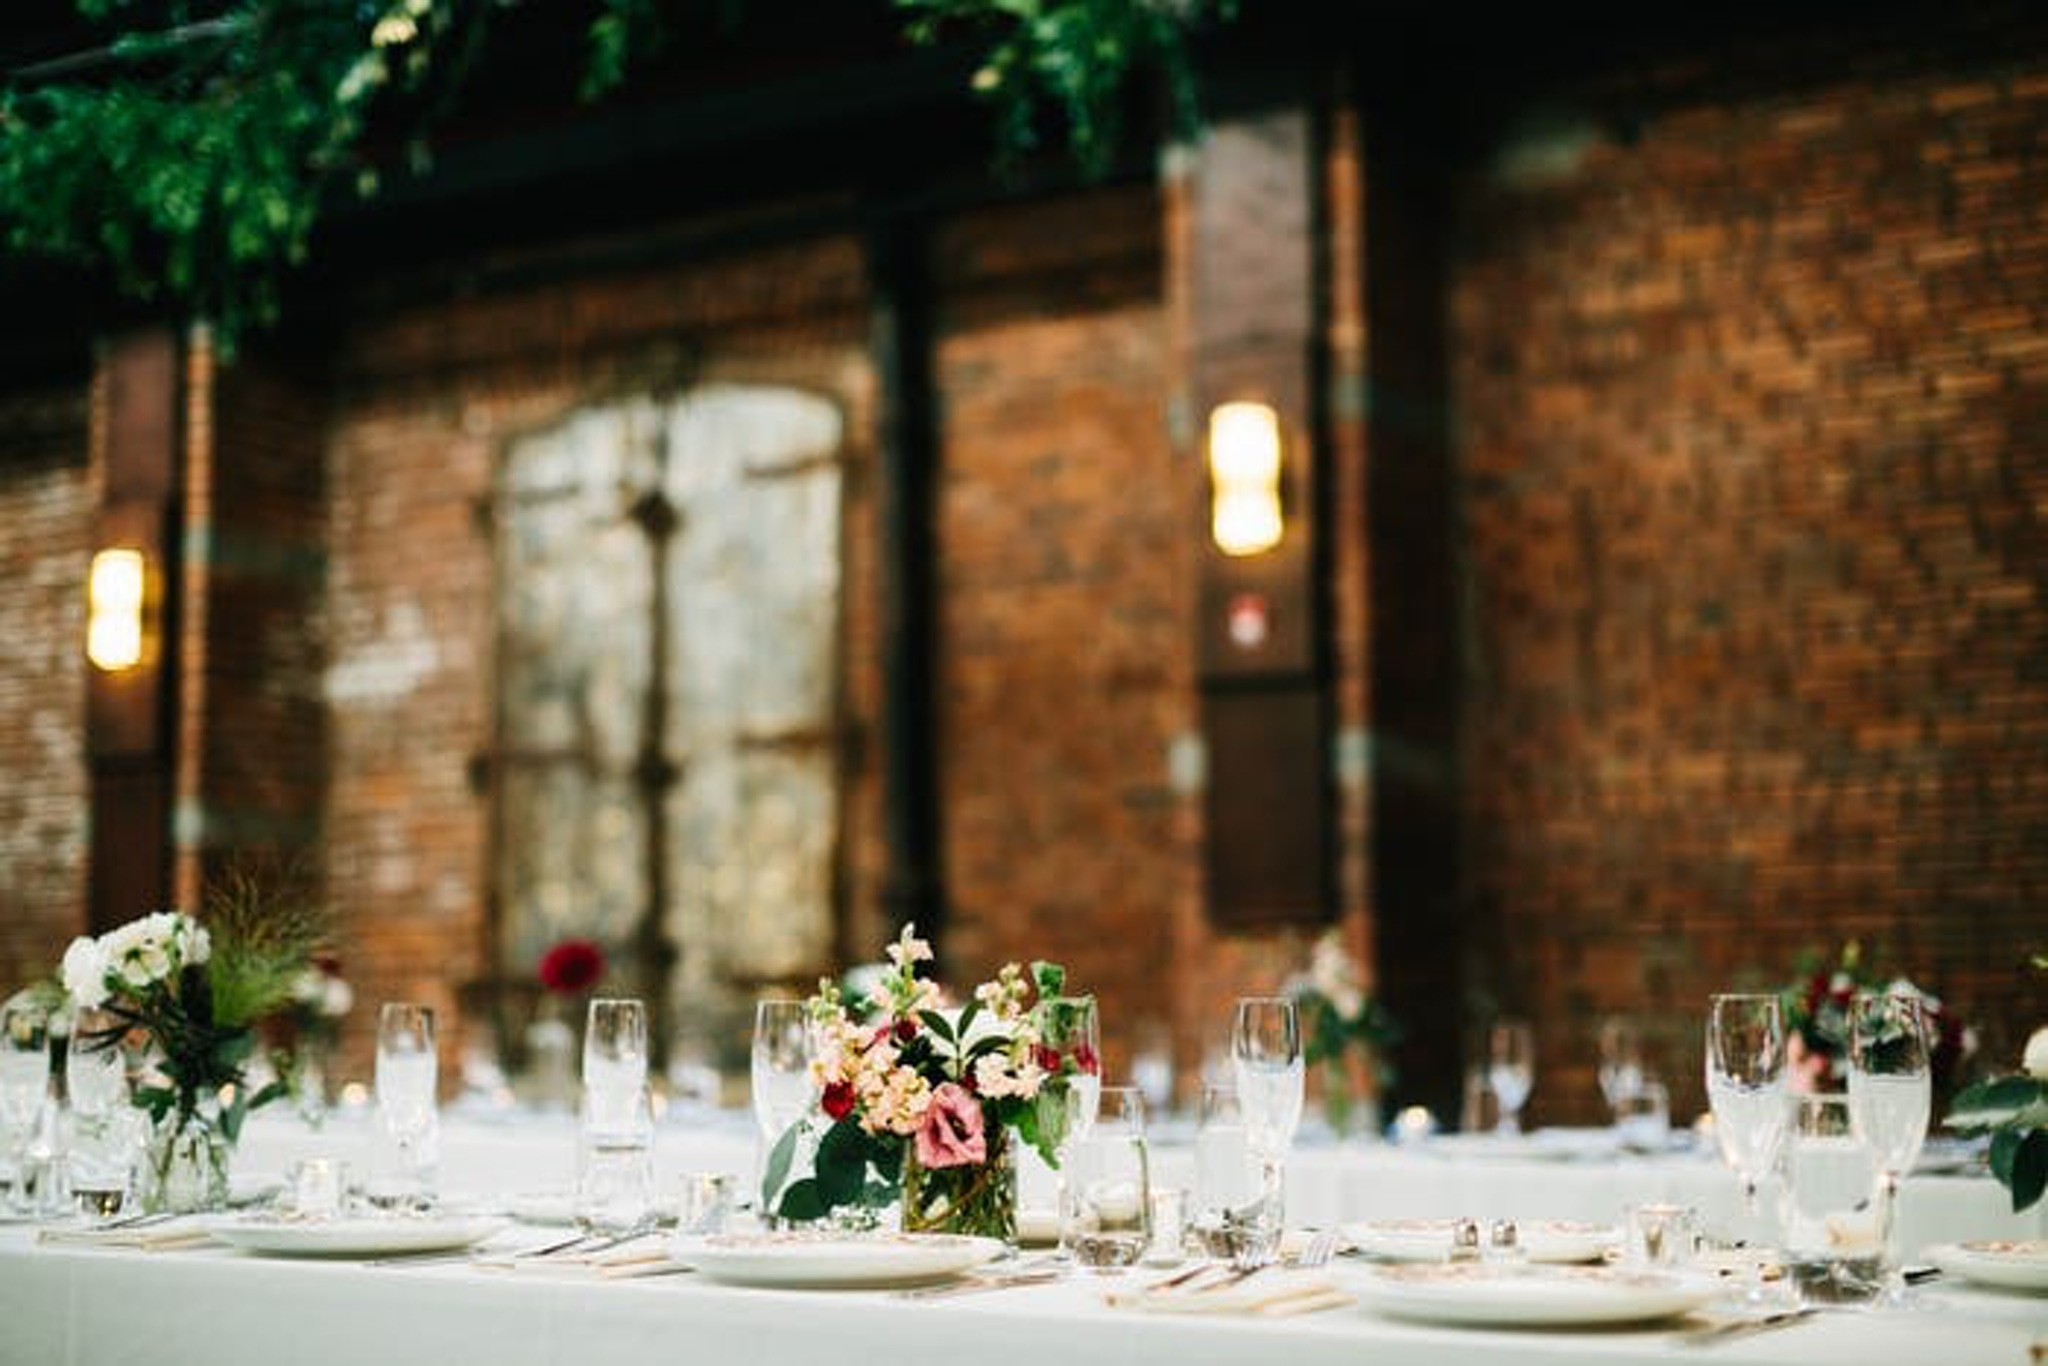 Brooklyn loft with colorful florals and glass table setting